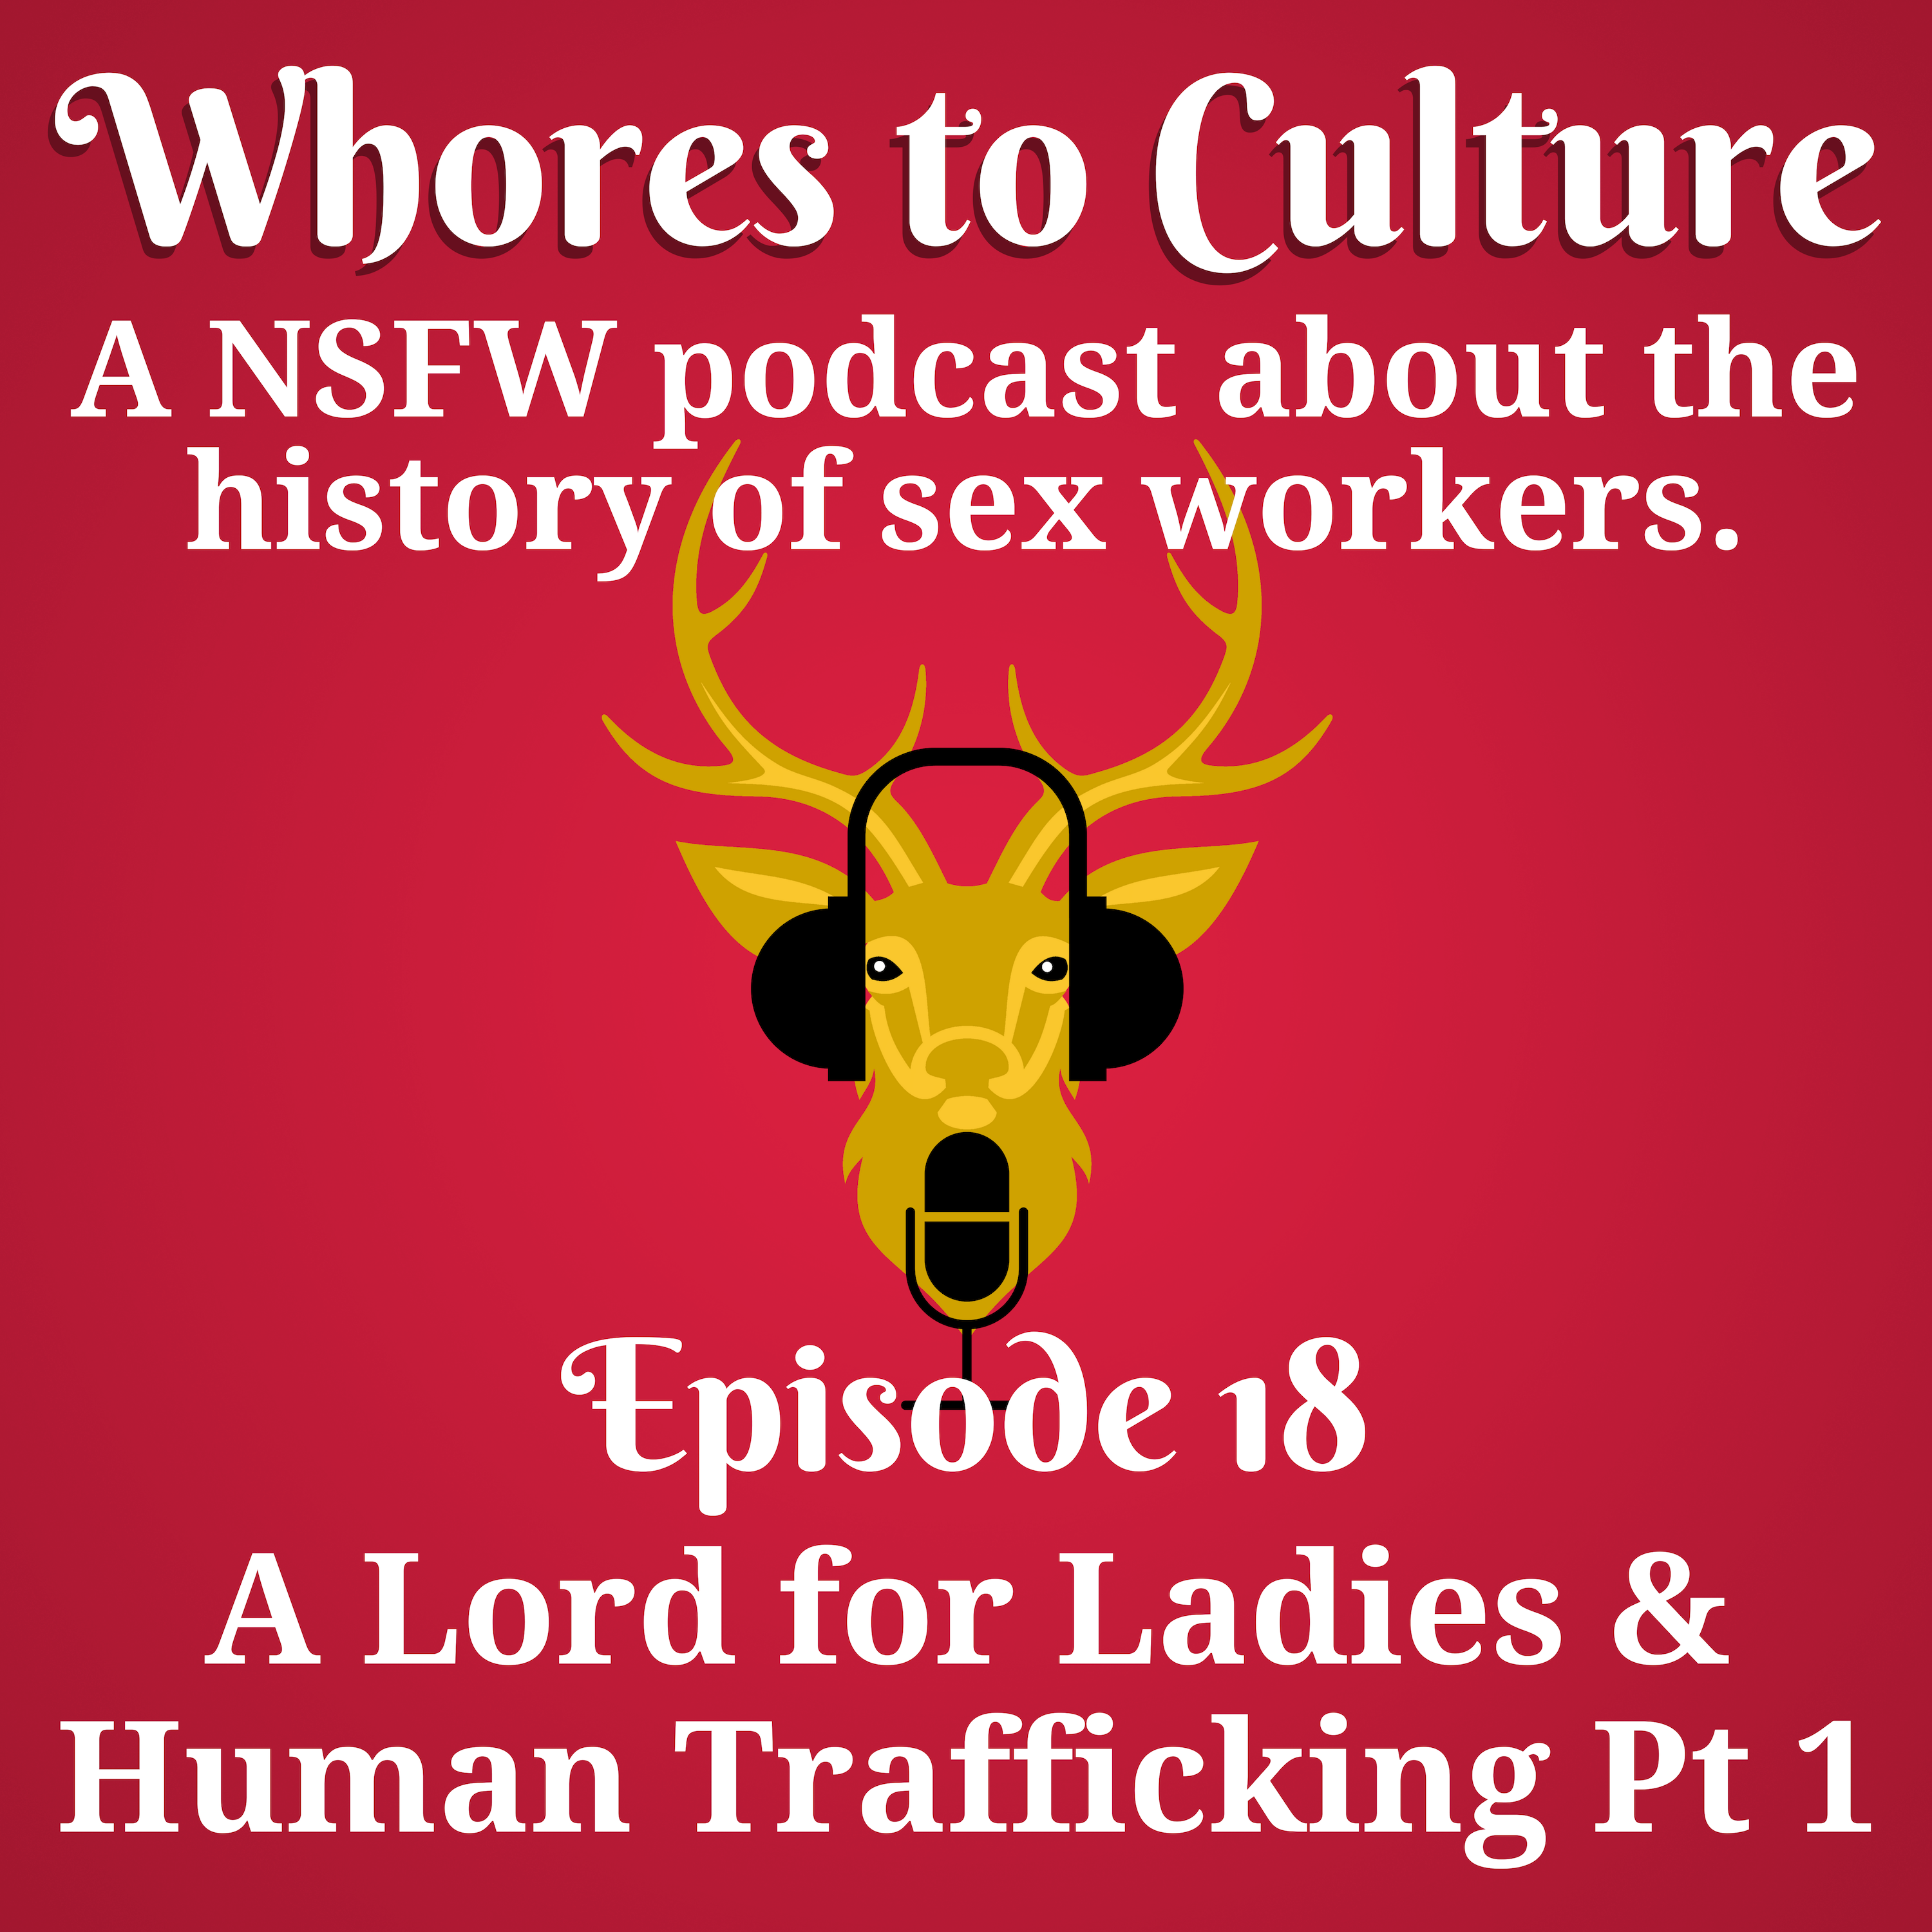 A Lord for Ladies & Human Trafficking Pt 1/2 – CONTENT WARNING